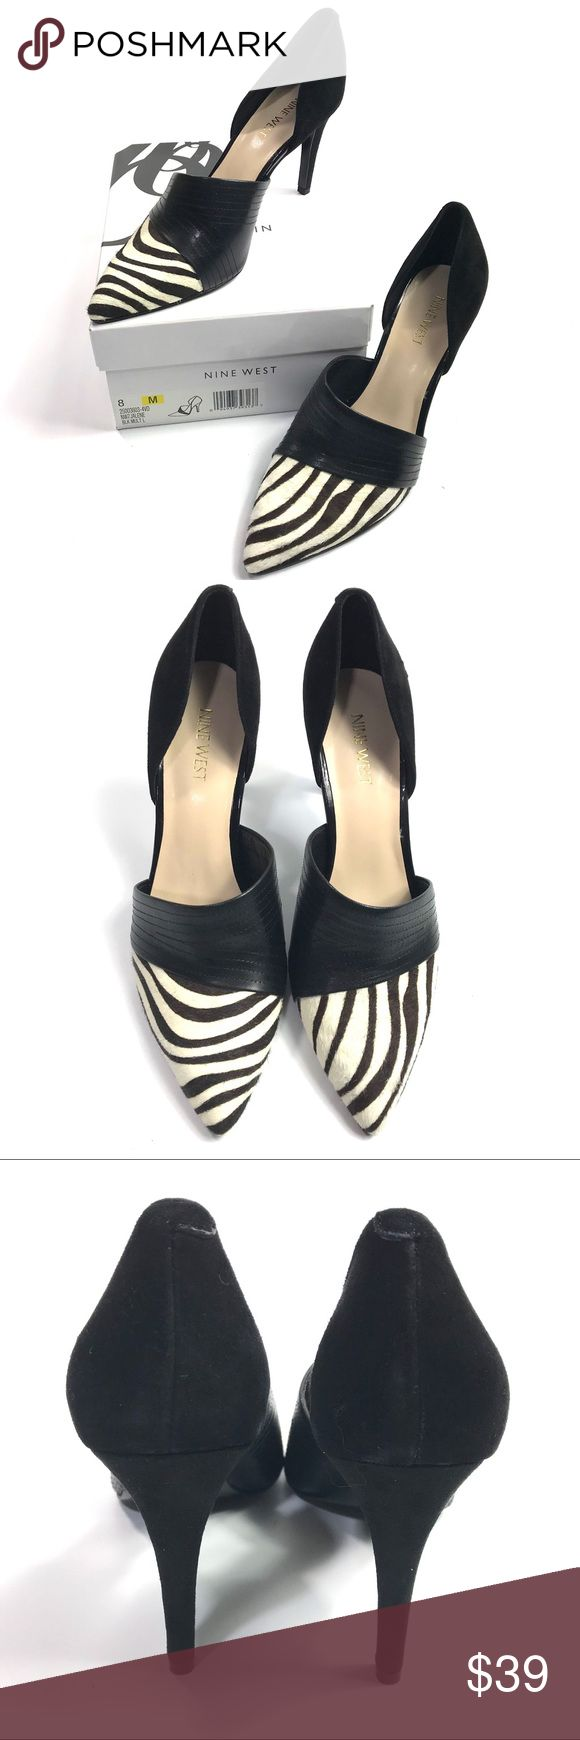 """NINE WEST D'orsay Pumps In  Zebra Nine West 'Jalene' d'Orsay pumps Size 8 Heels 3 1/2"""" Faux fur and leather Black and white(Zelda print in faux fur) New never worn, just tried on at store Comes in original box  Thank you for looking and please check out the rest of my closet. Nine West Shoes Heels"""